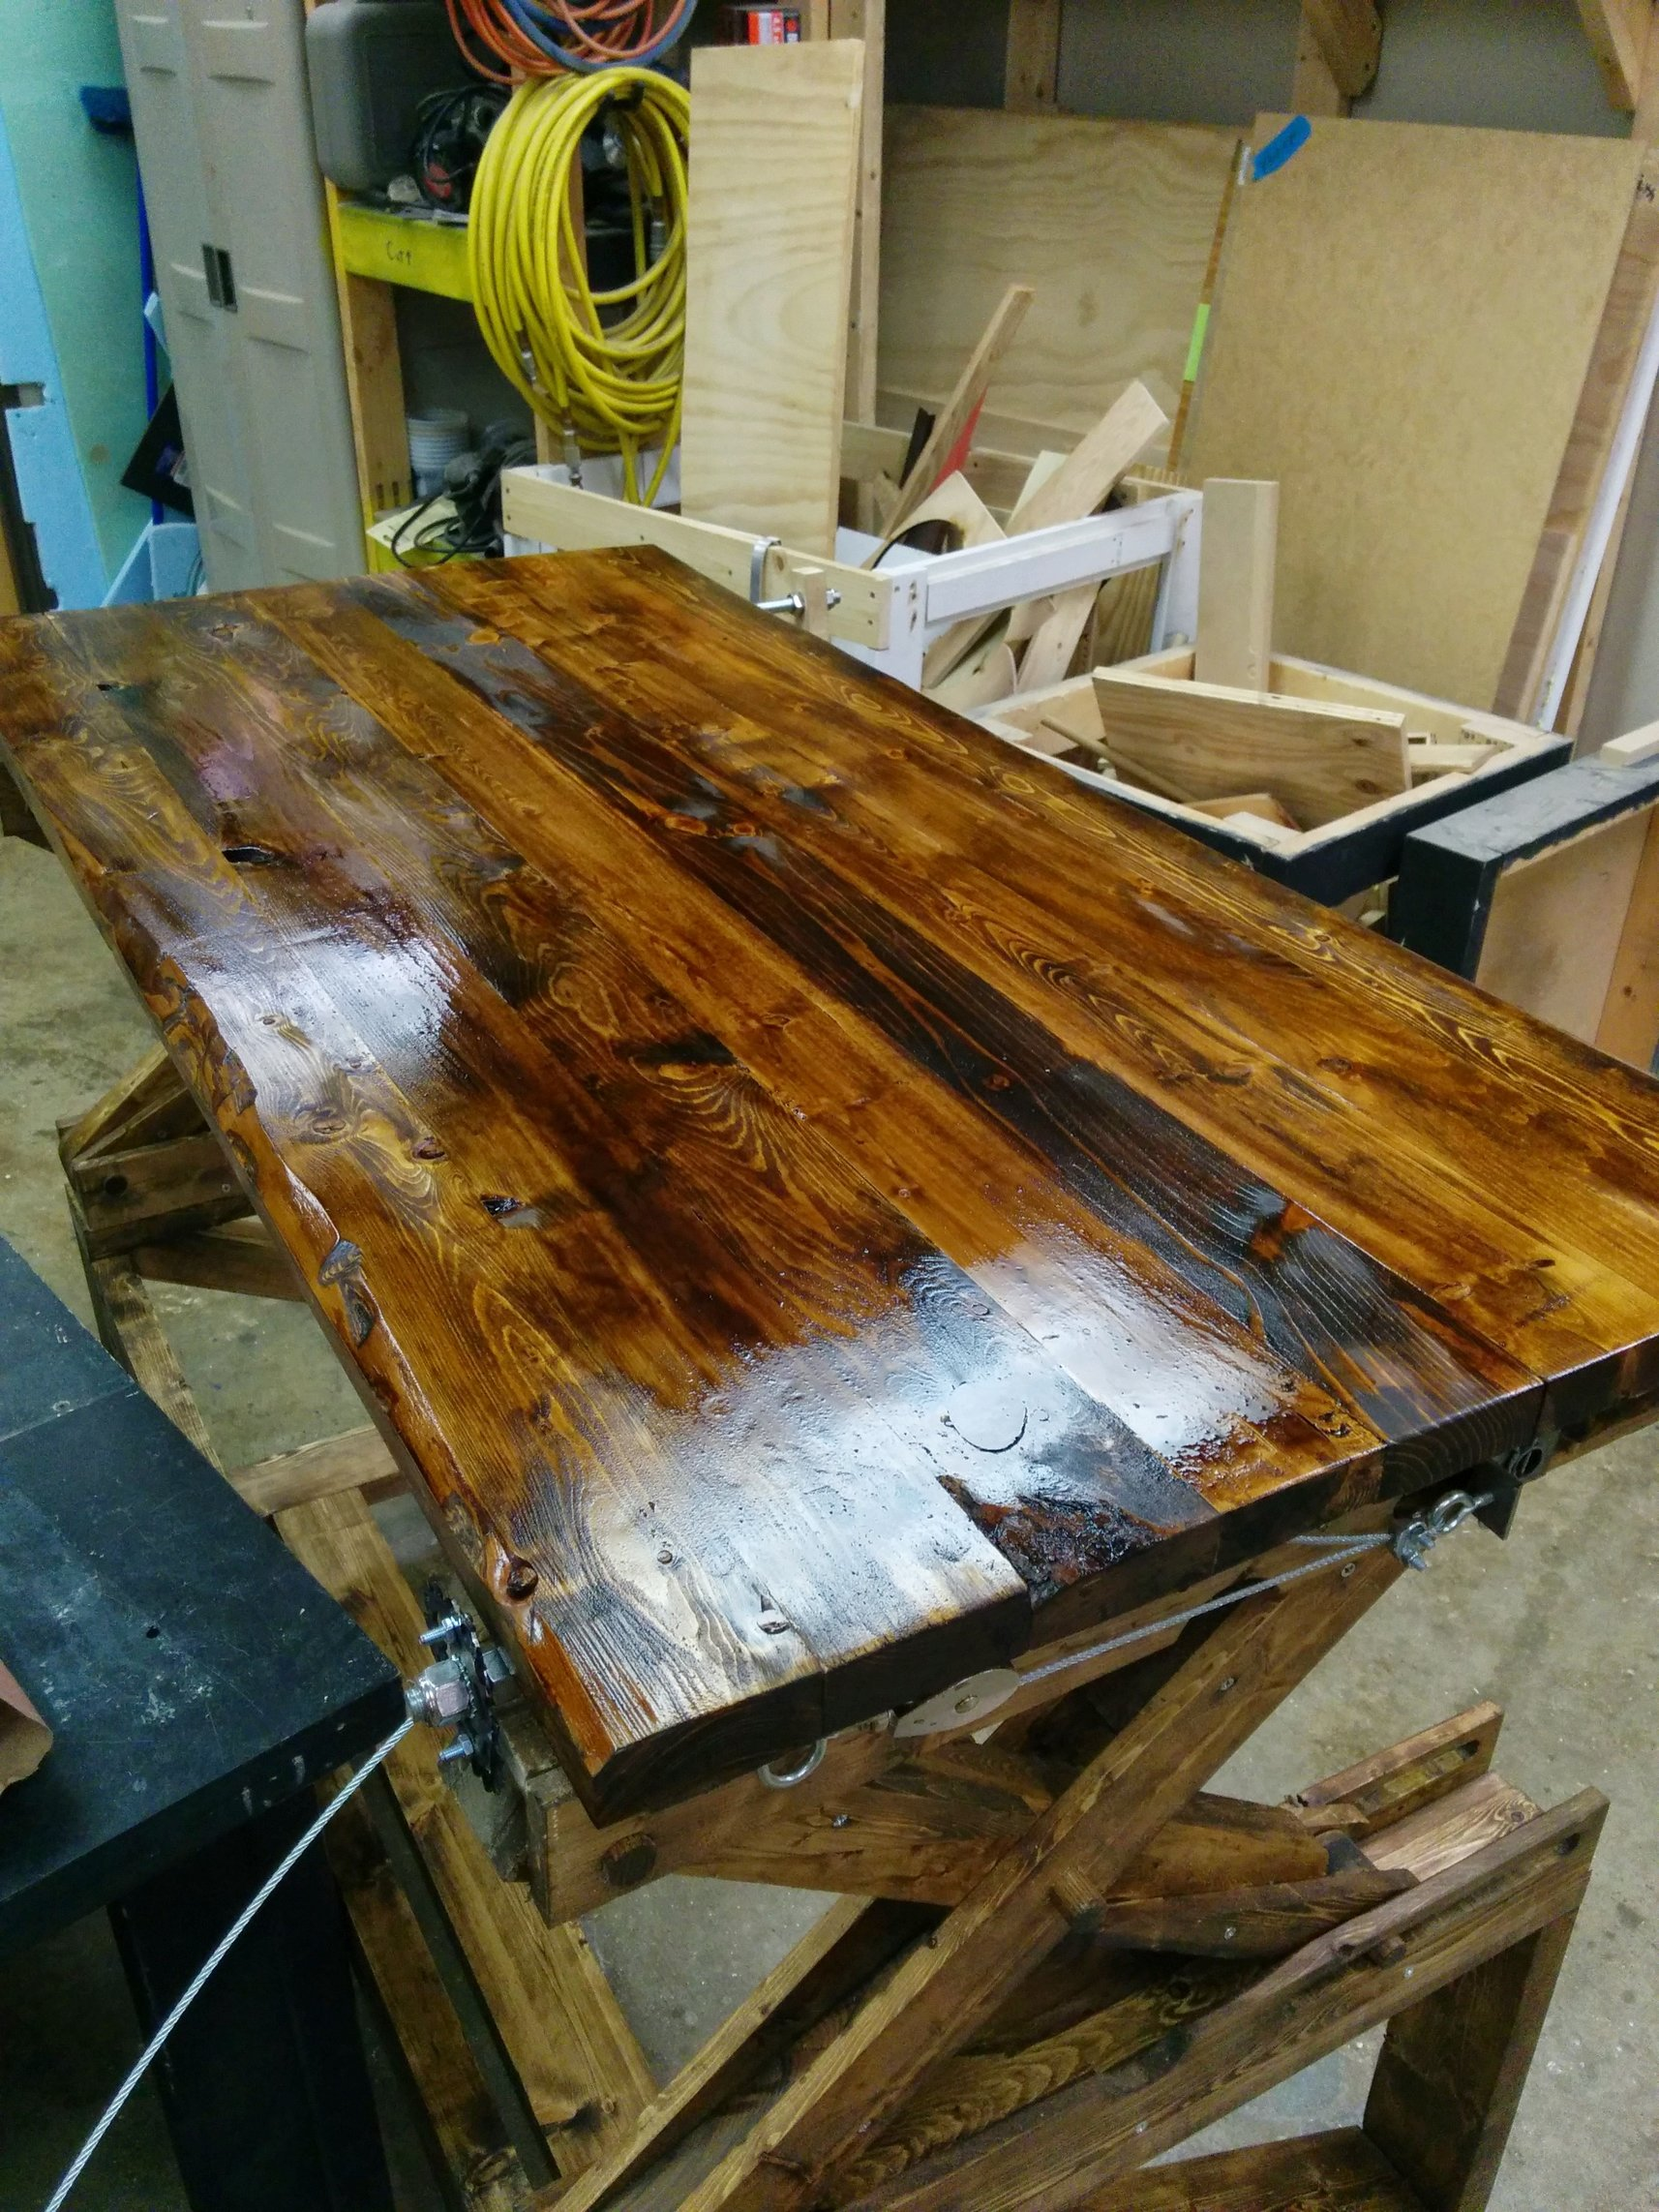 Held my breath and started staining the tabletop. I used Minwax Provincial.